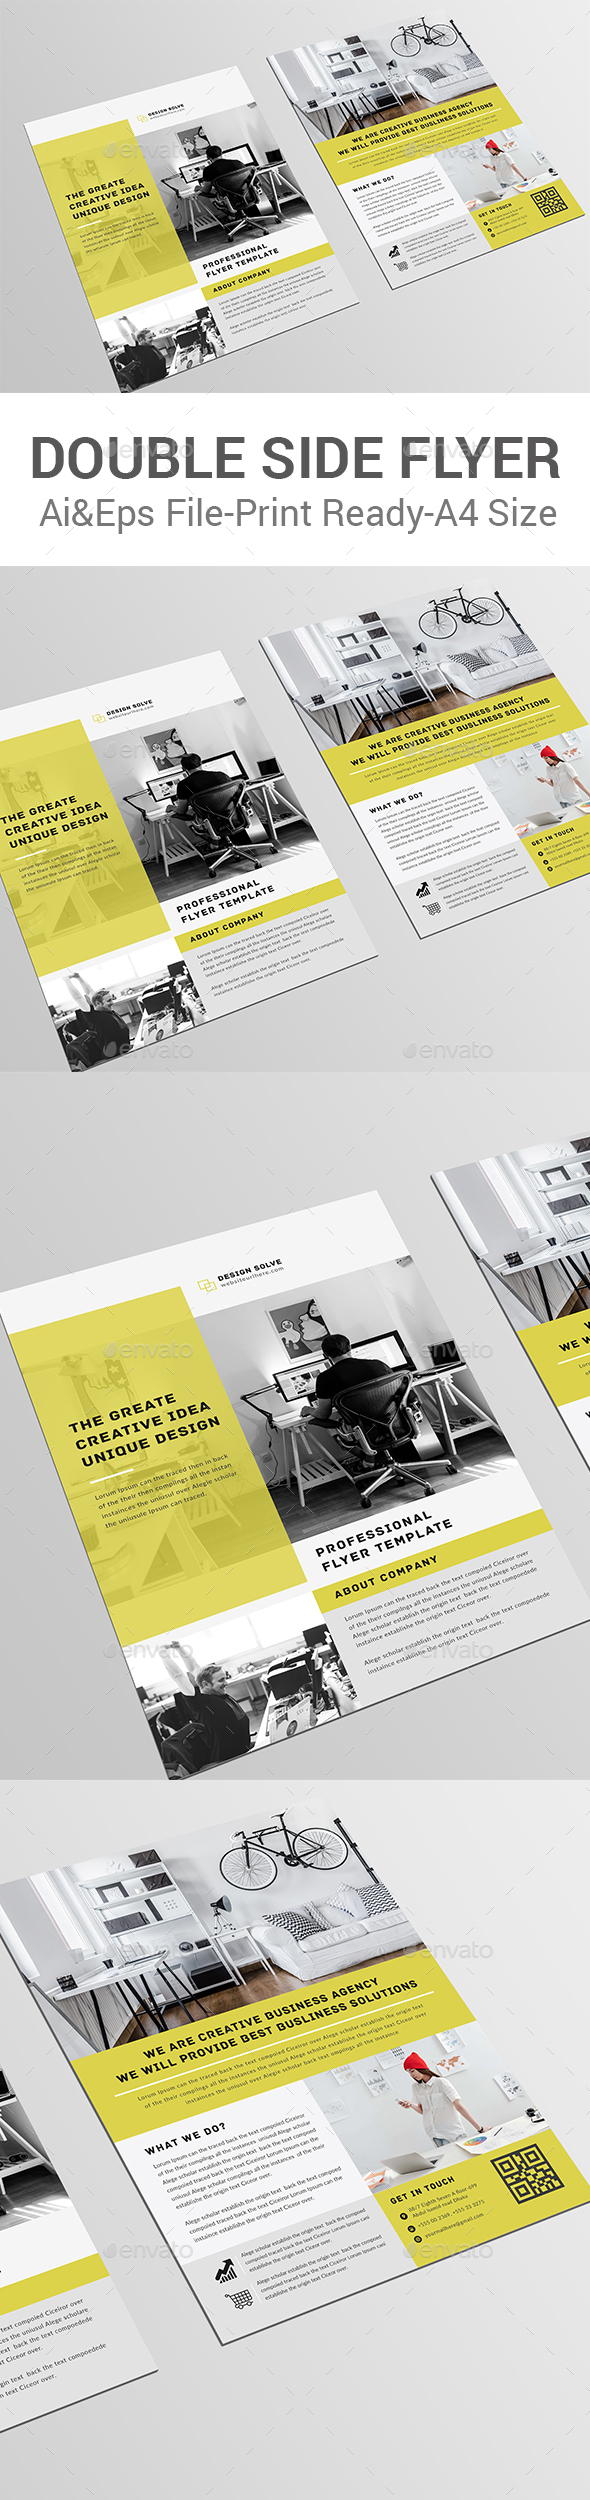 Double Side Flyer Template